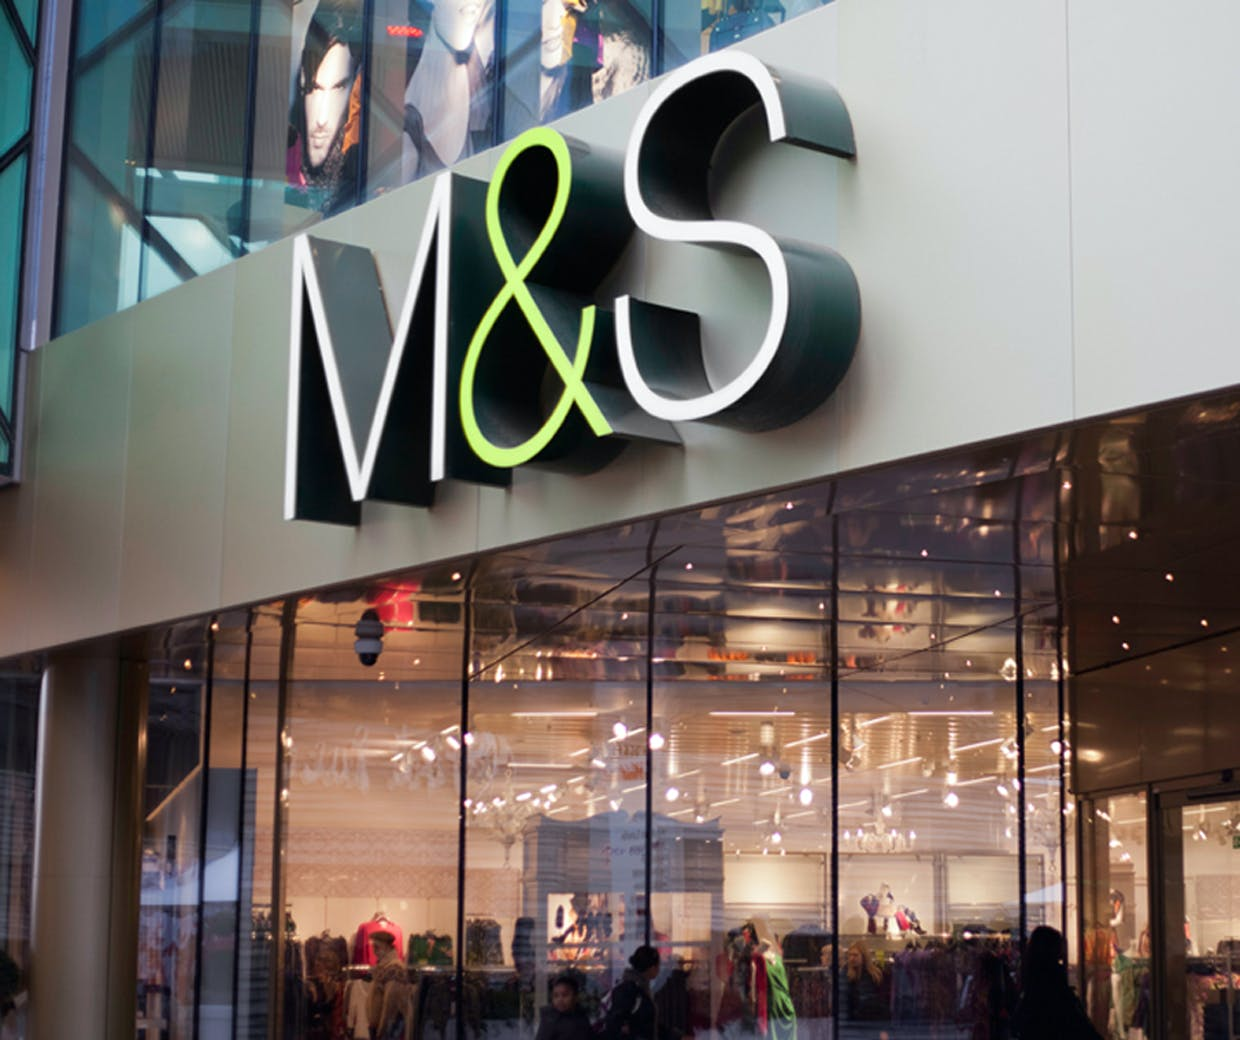 MS Chief Steve Rowe Has Hinted Could Continue To Cut Its Marketing Budget As It Focuses Efforts On Sparks Loyalty Card